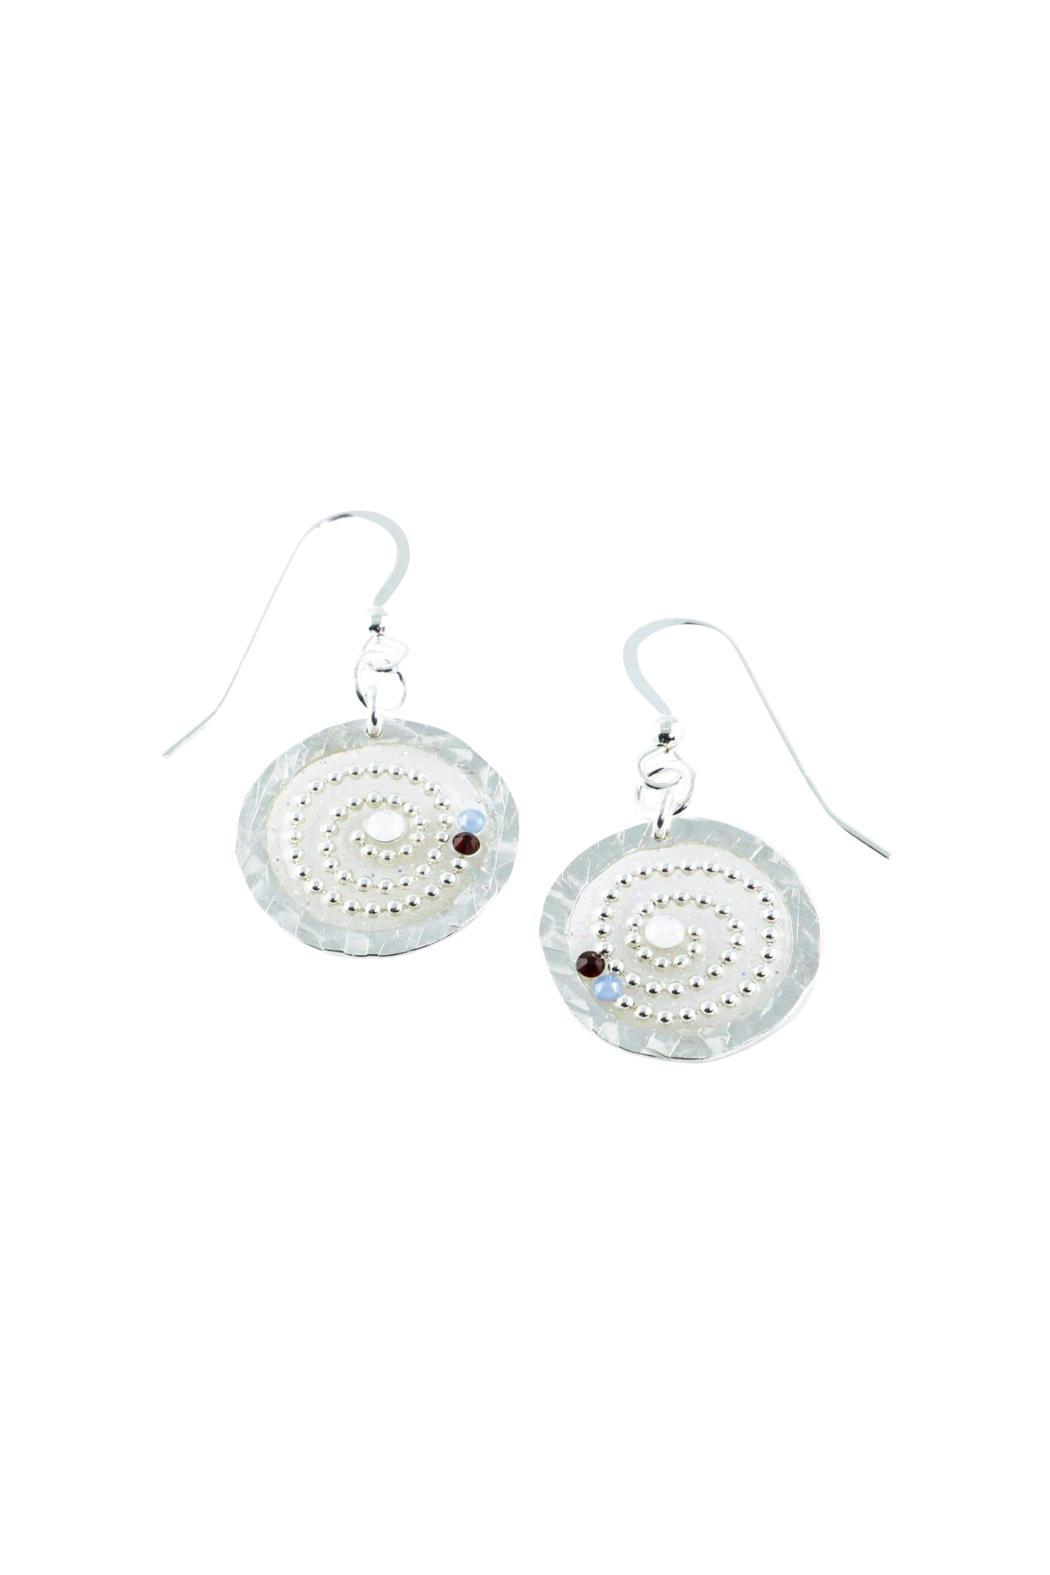 G Gallery & Glass Studio Sterling/swarovski Earrings - Main Image